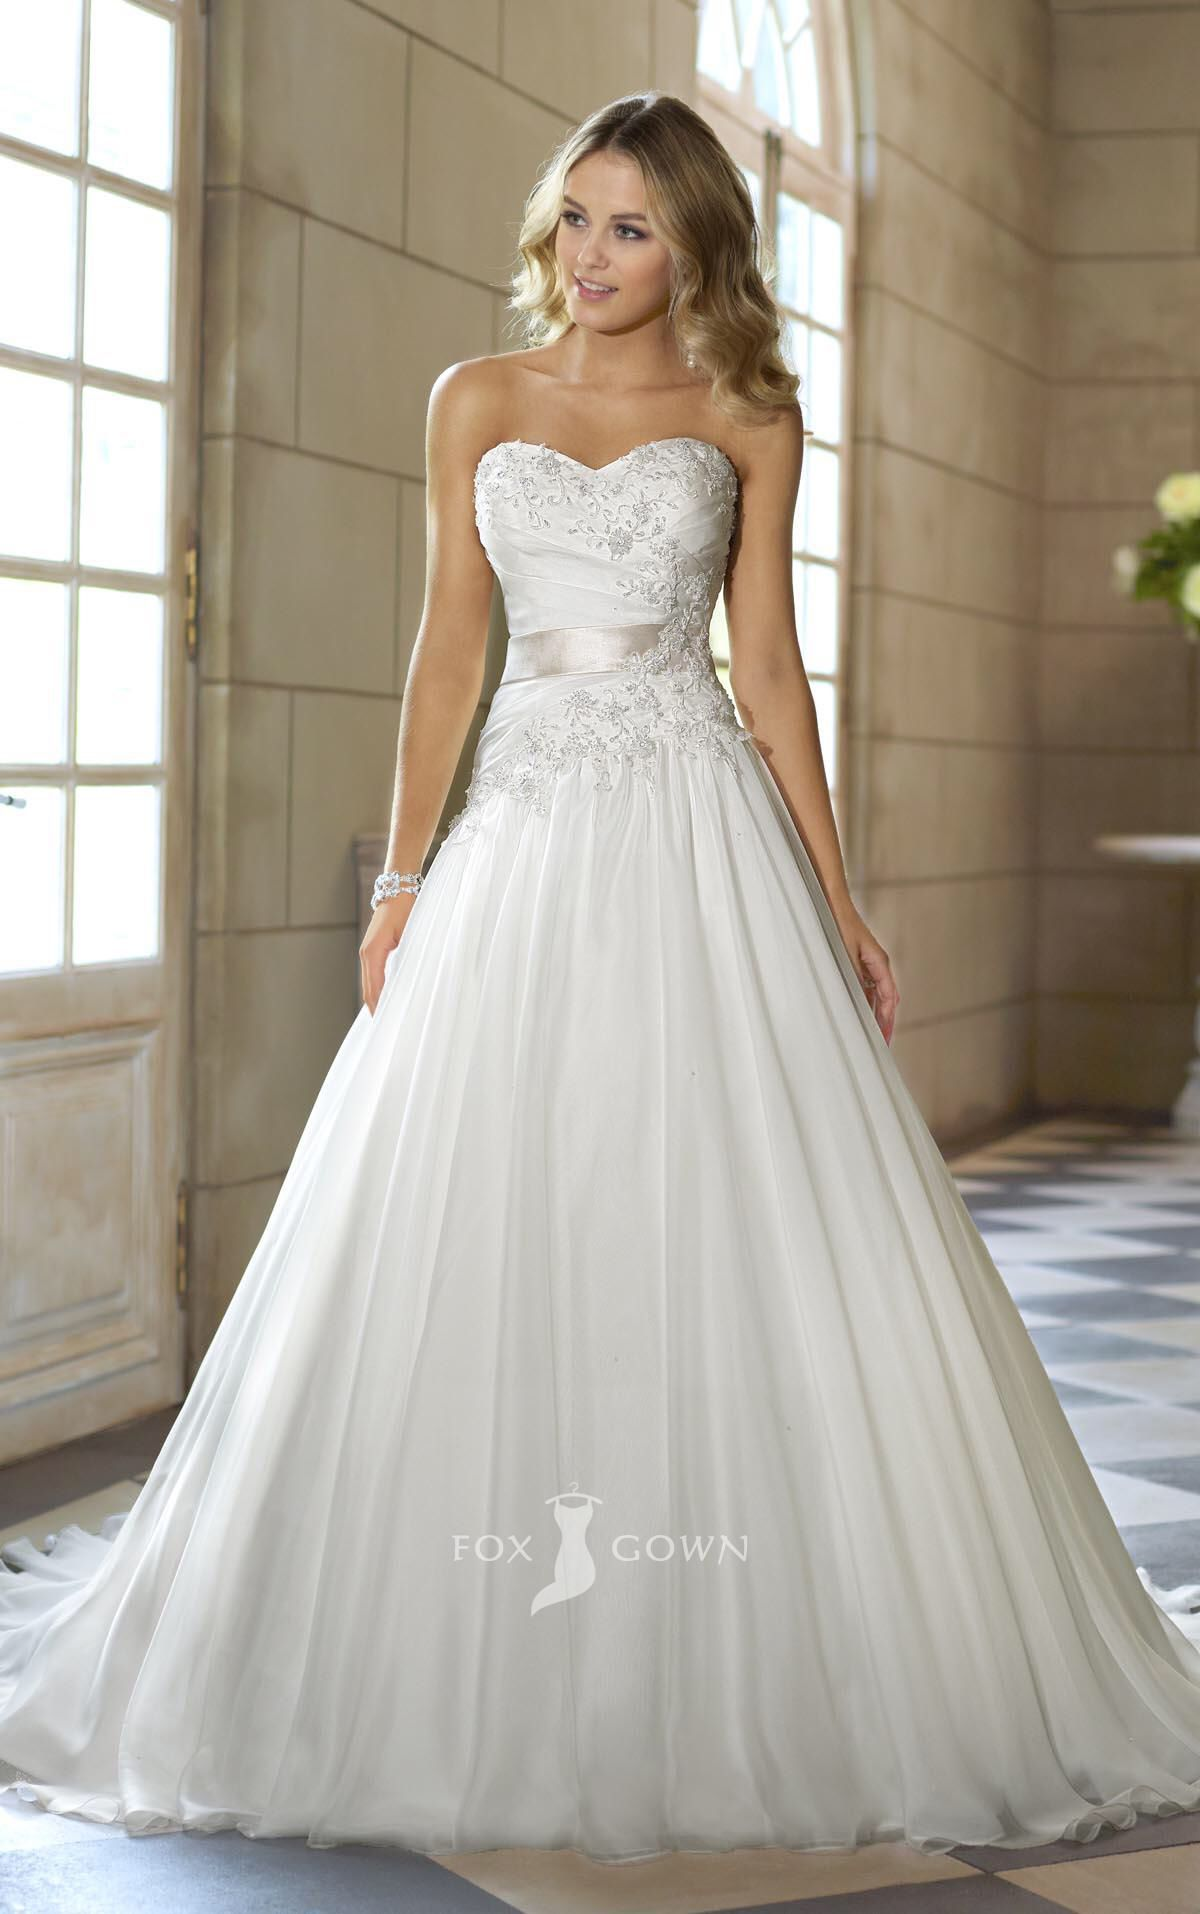 Nice dresses for wedding  Nice dress  I like one or more aspects of it  bodas  Pinterest